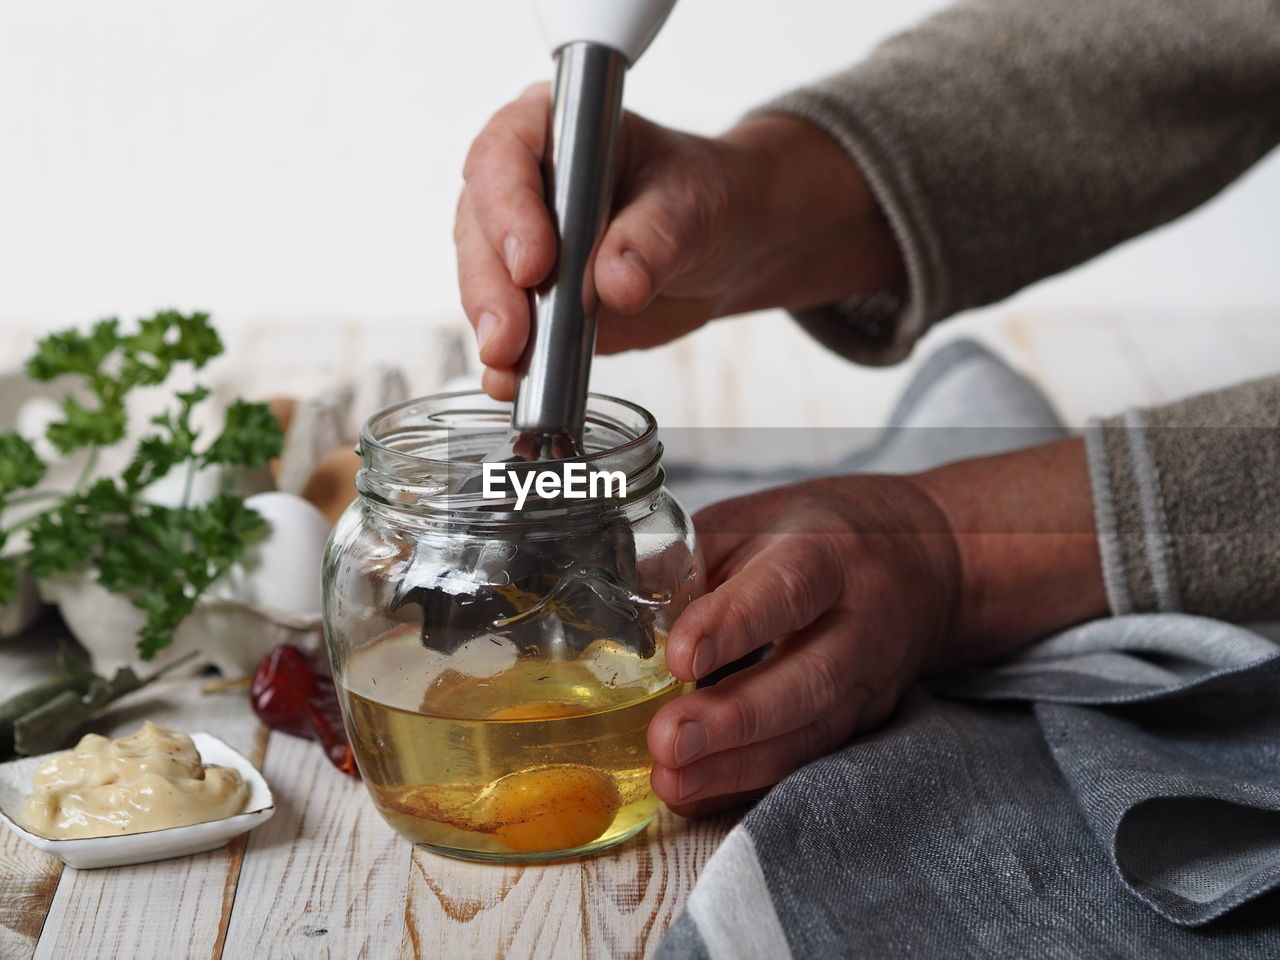 Midsection of person preparing food in glass jar on table